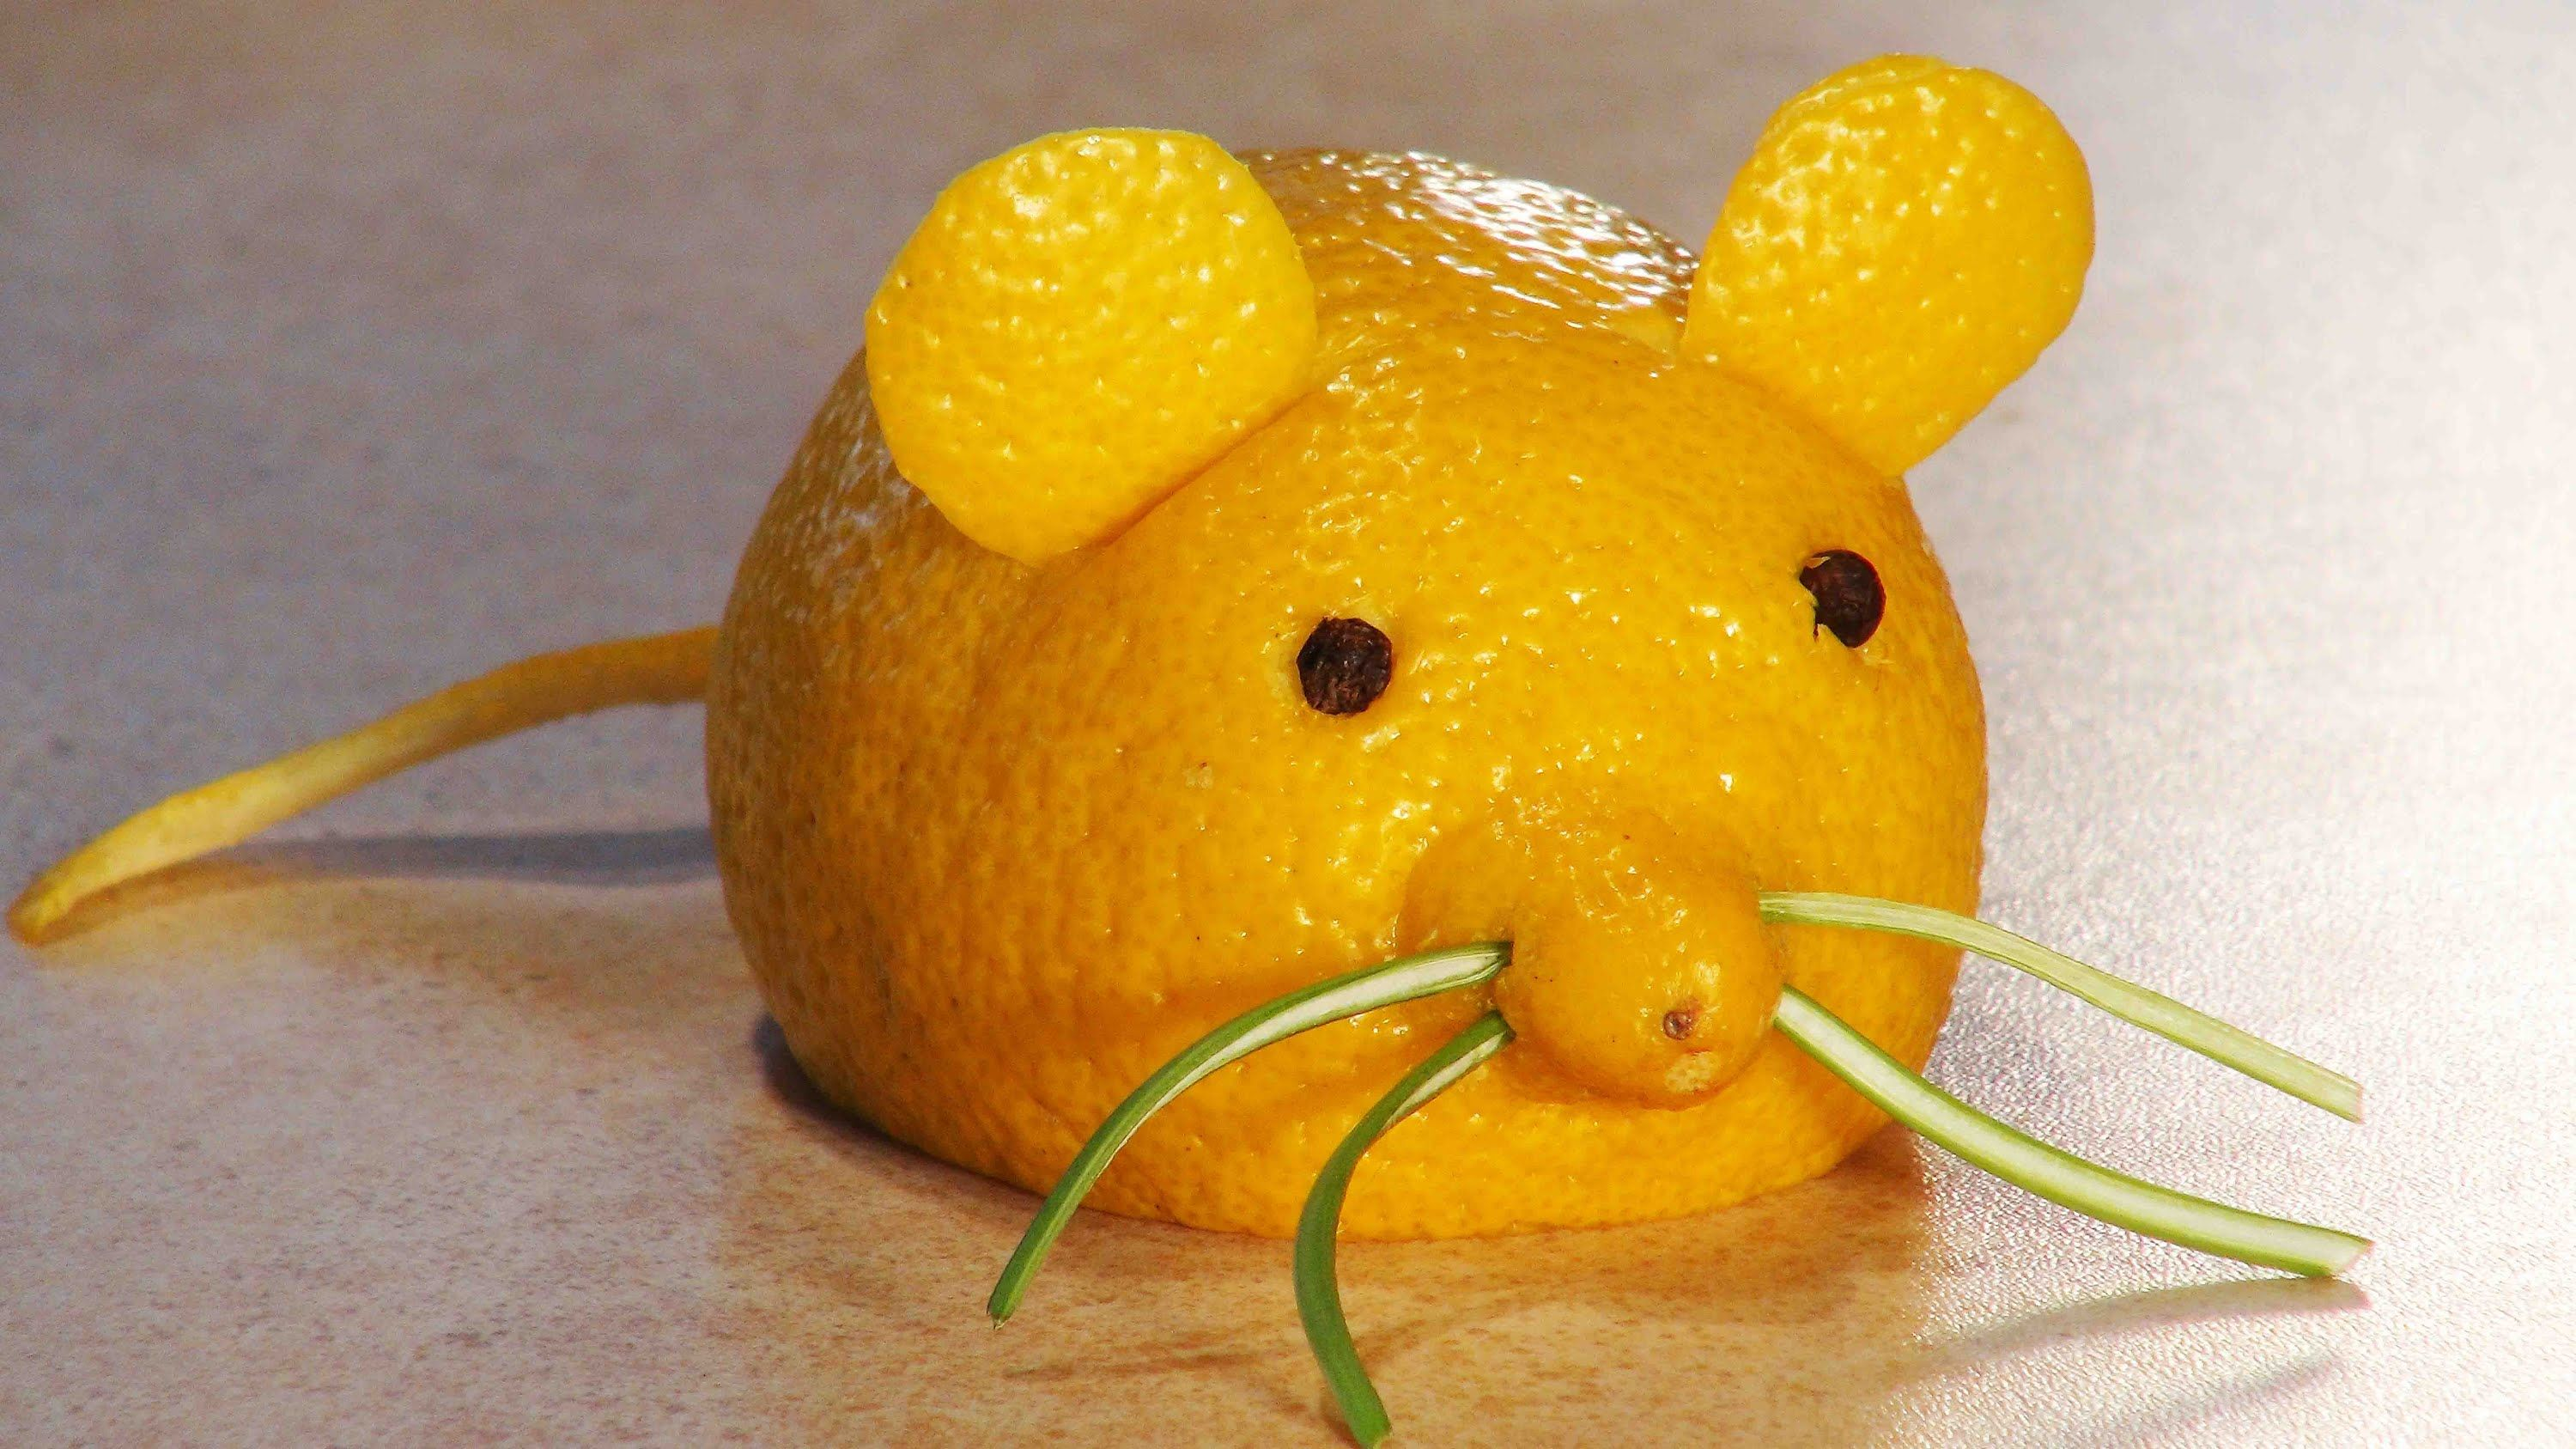 Simple fruit carving for kids a lemon